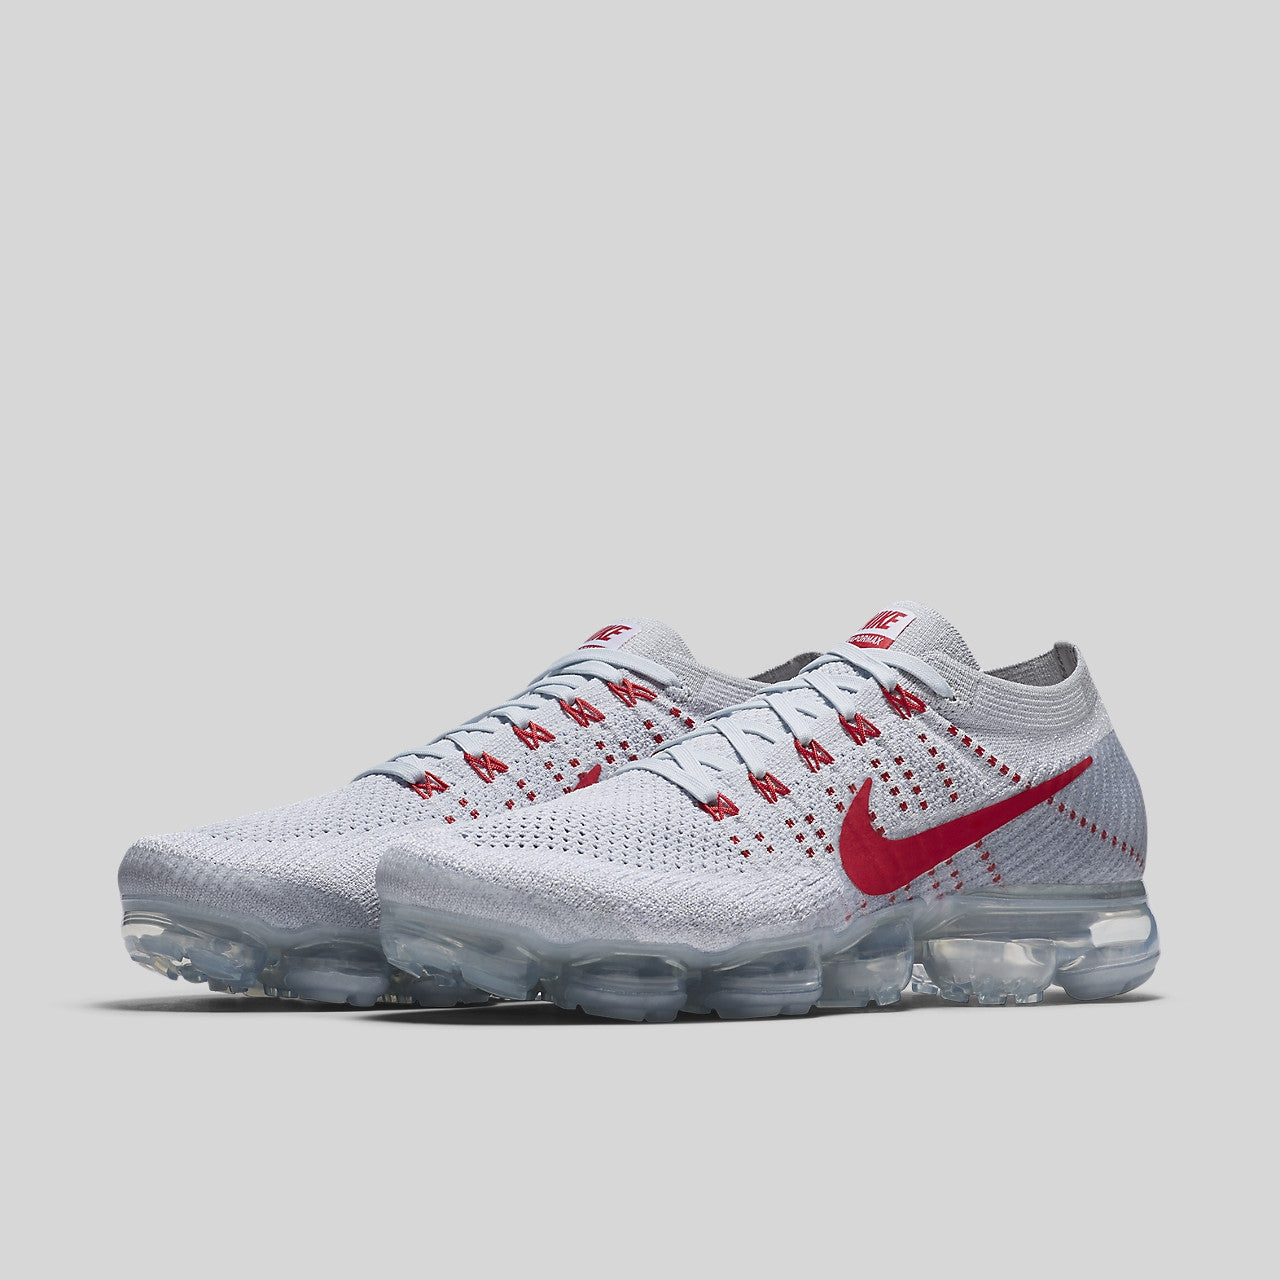 ab99ca5767ff6 Look Out For Nike Air Vapormax Flyknit OG. Item Number 849558-006 ...